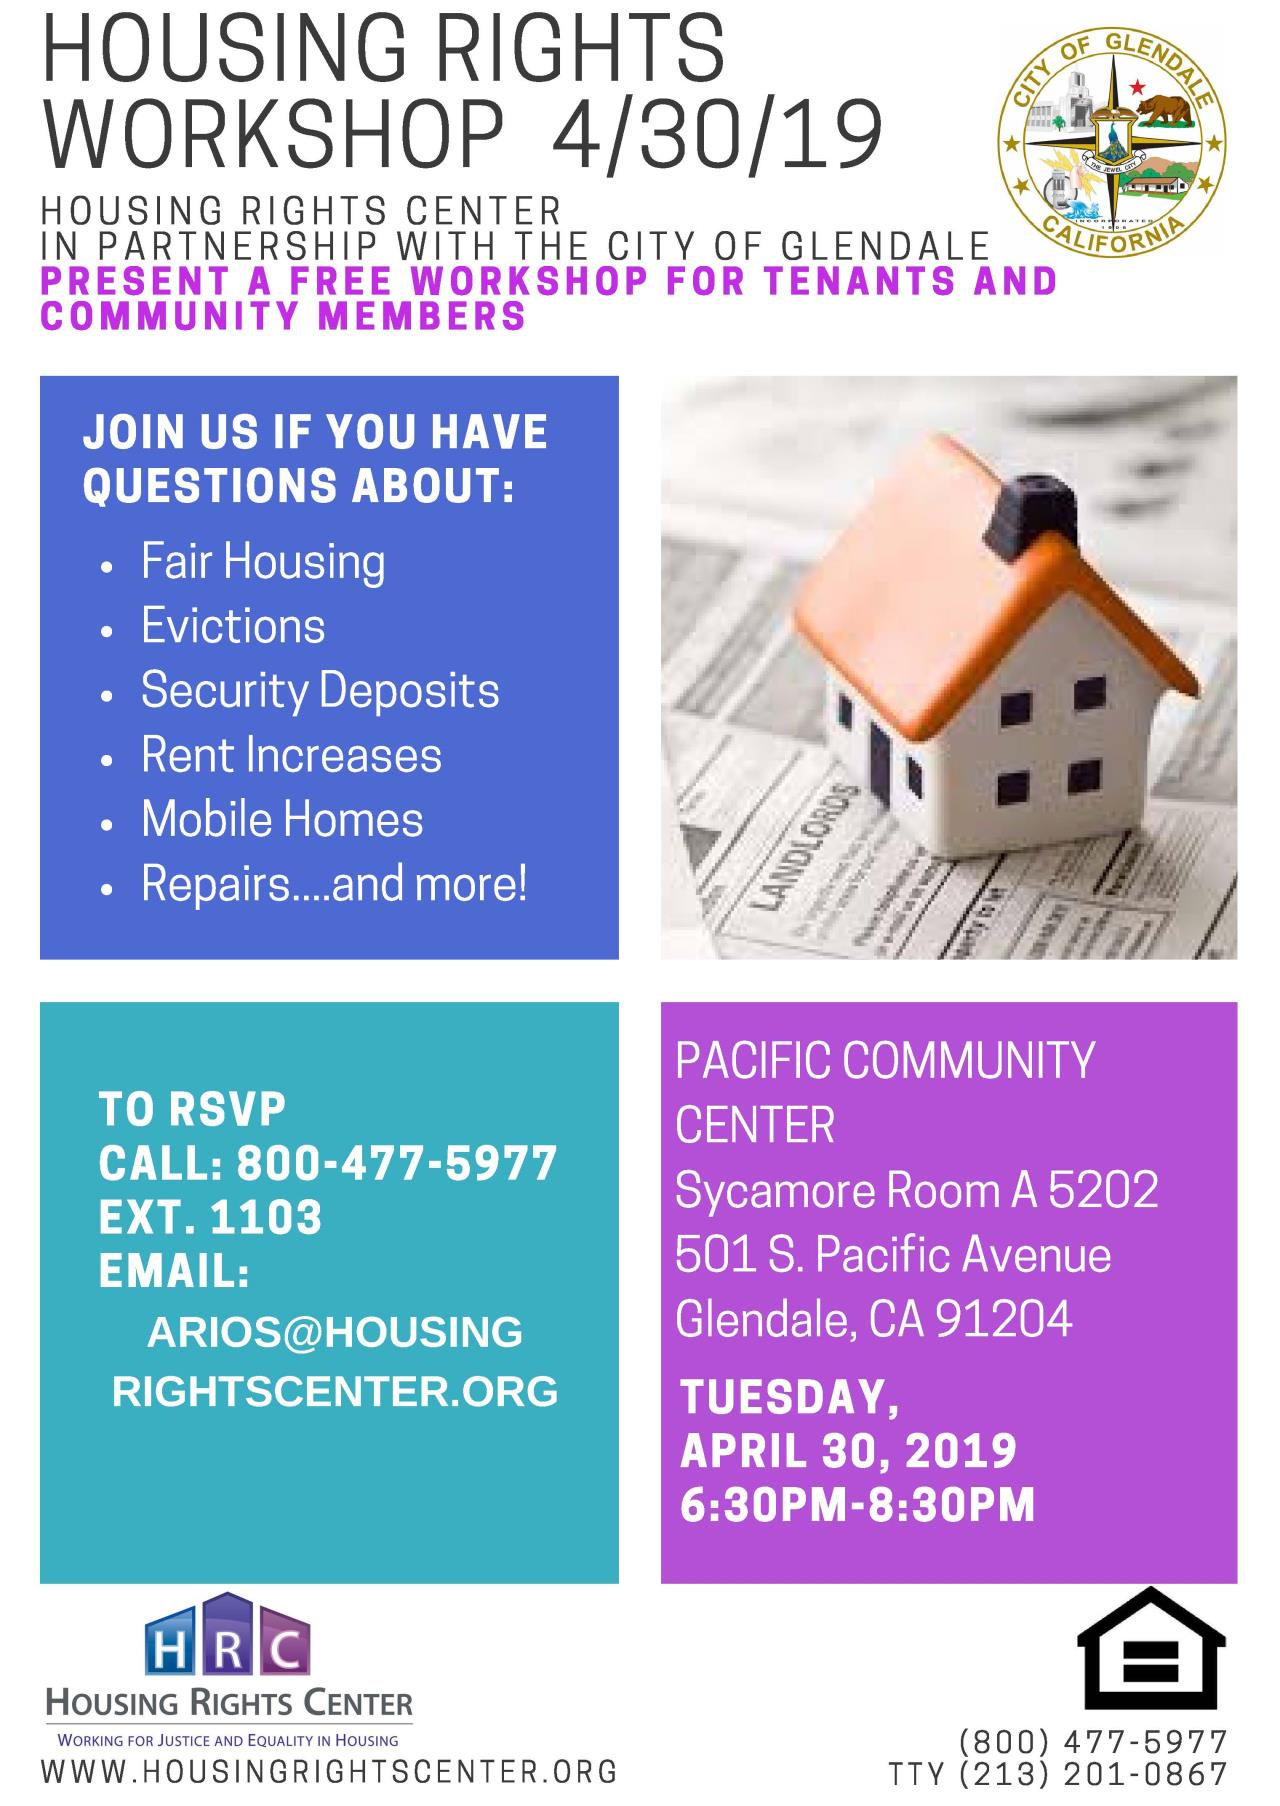 Glendale Housing Rights Workshop_04.30.2019 Event Flyer_Page_1